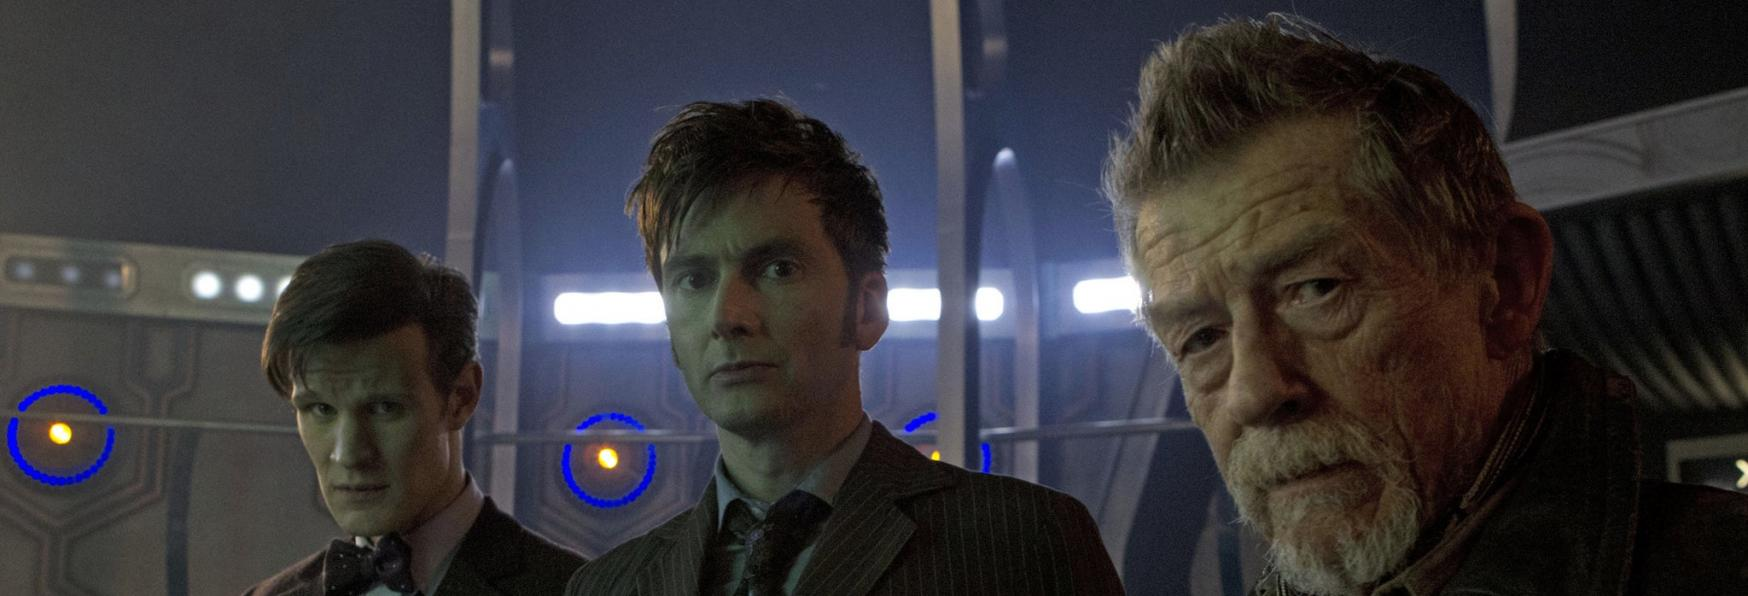 Doctor Who: Russell T. Davies (ex Showrunner) propone un Franchise in Stile Marvel